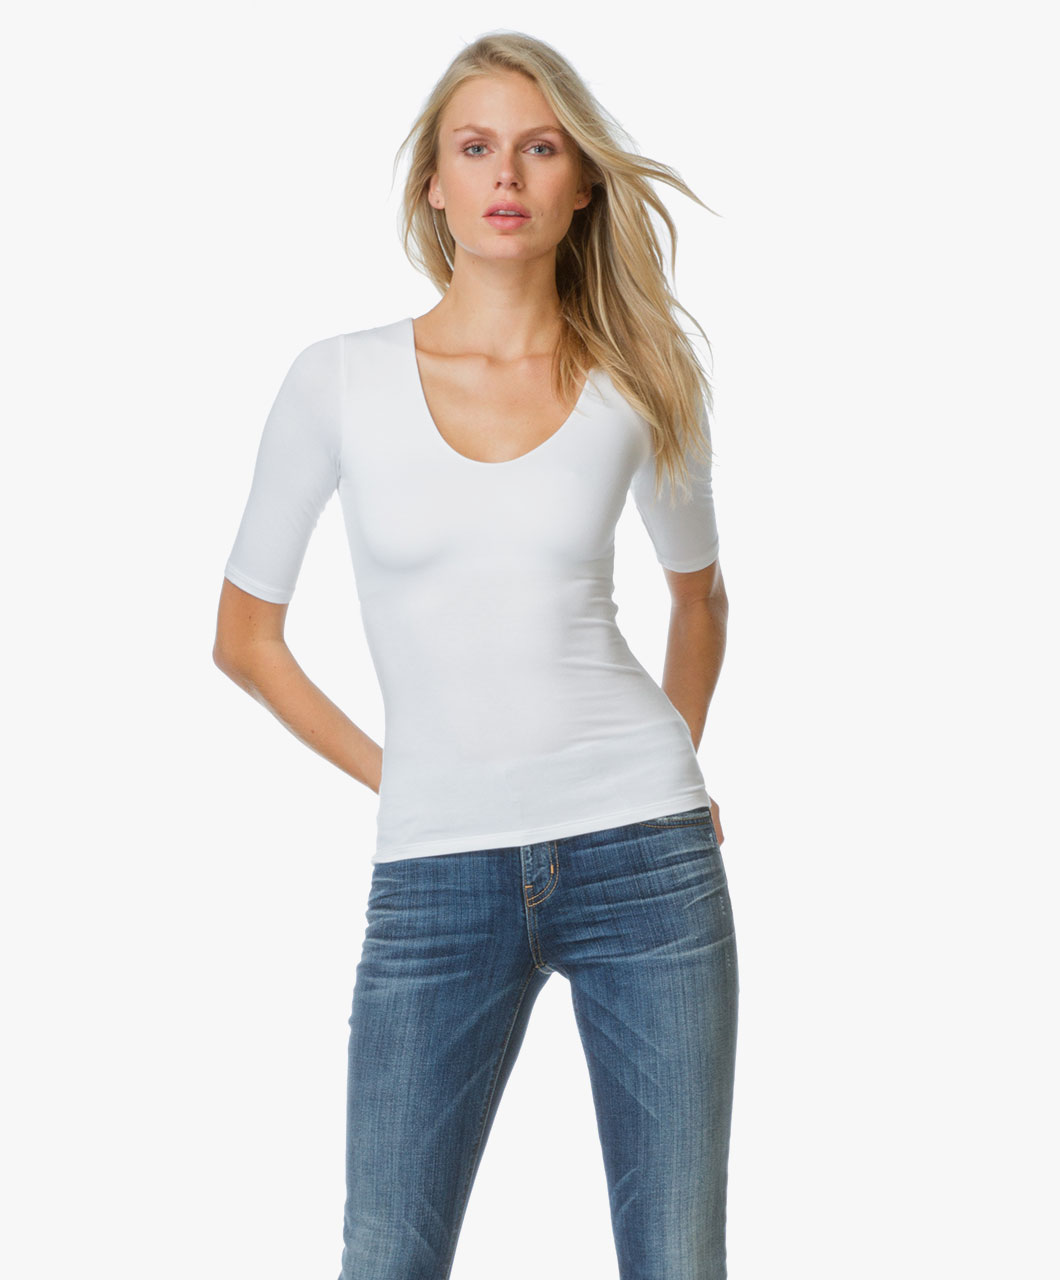 T by alexander wang t shirt with back slit wit 400225 100 for Alexander wang t shirts